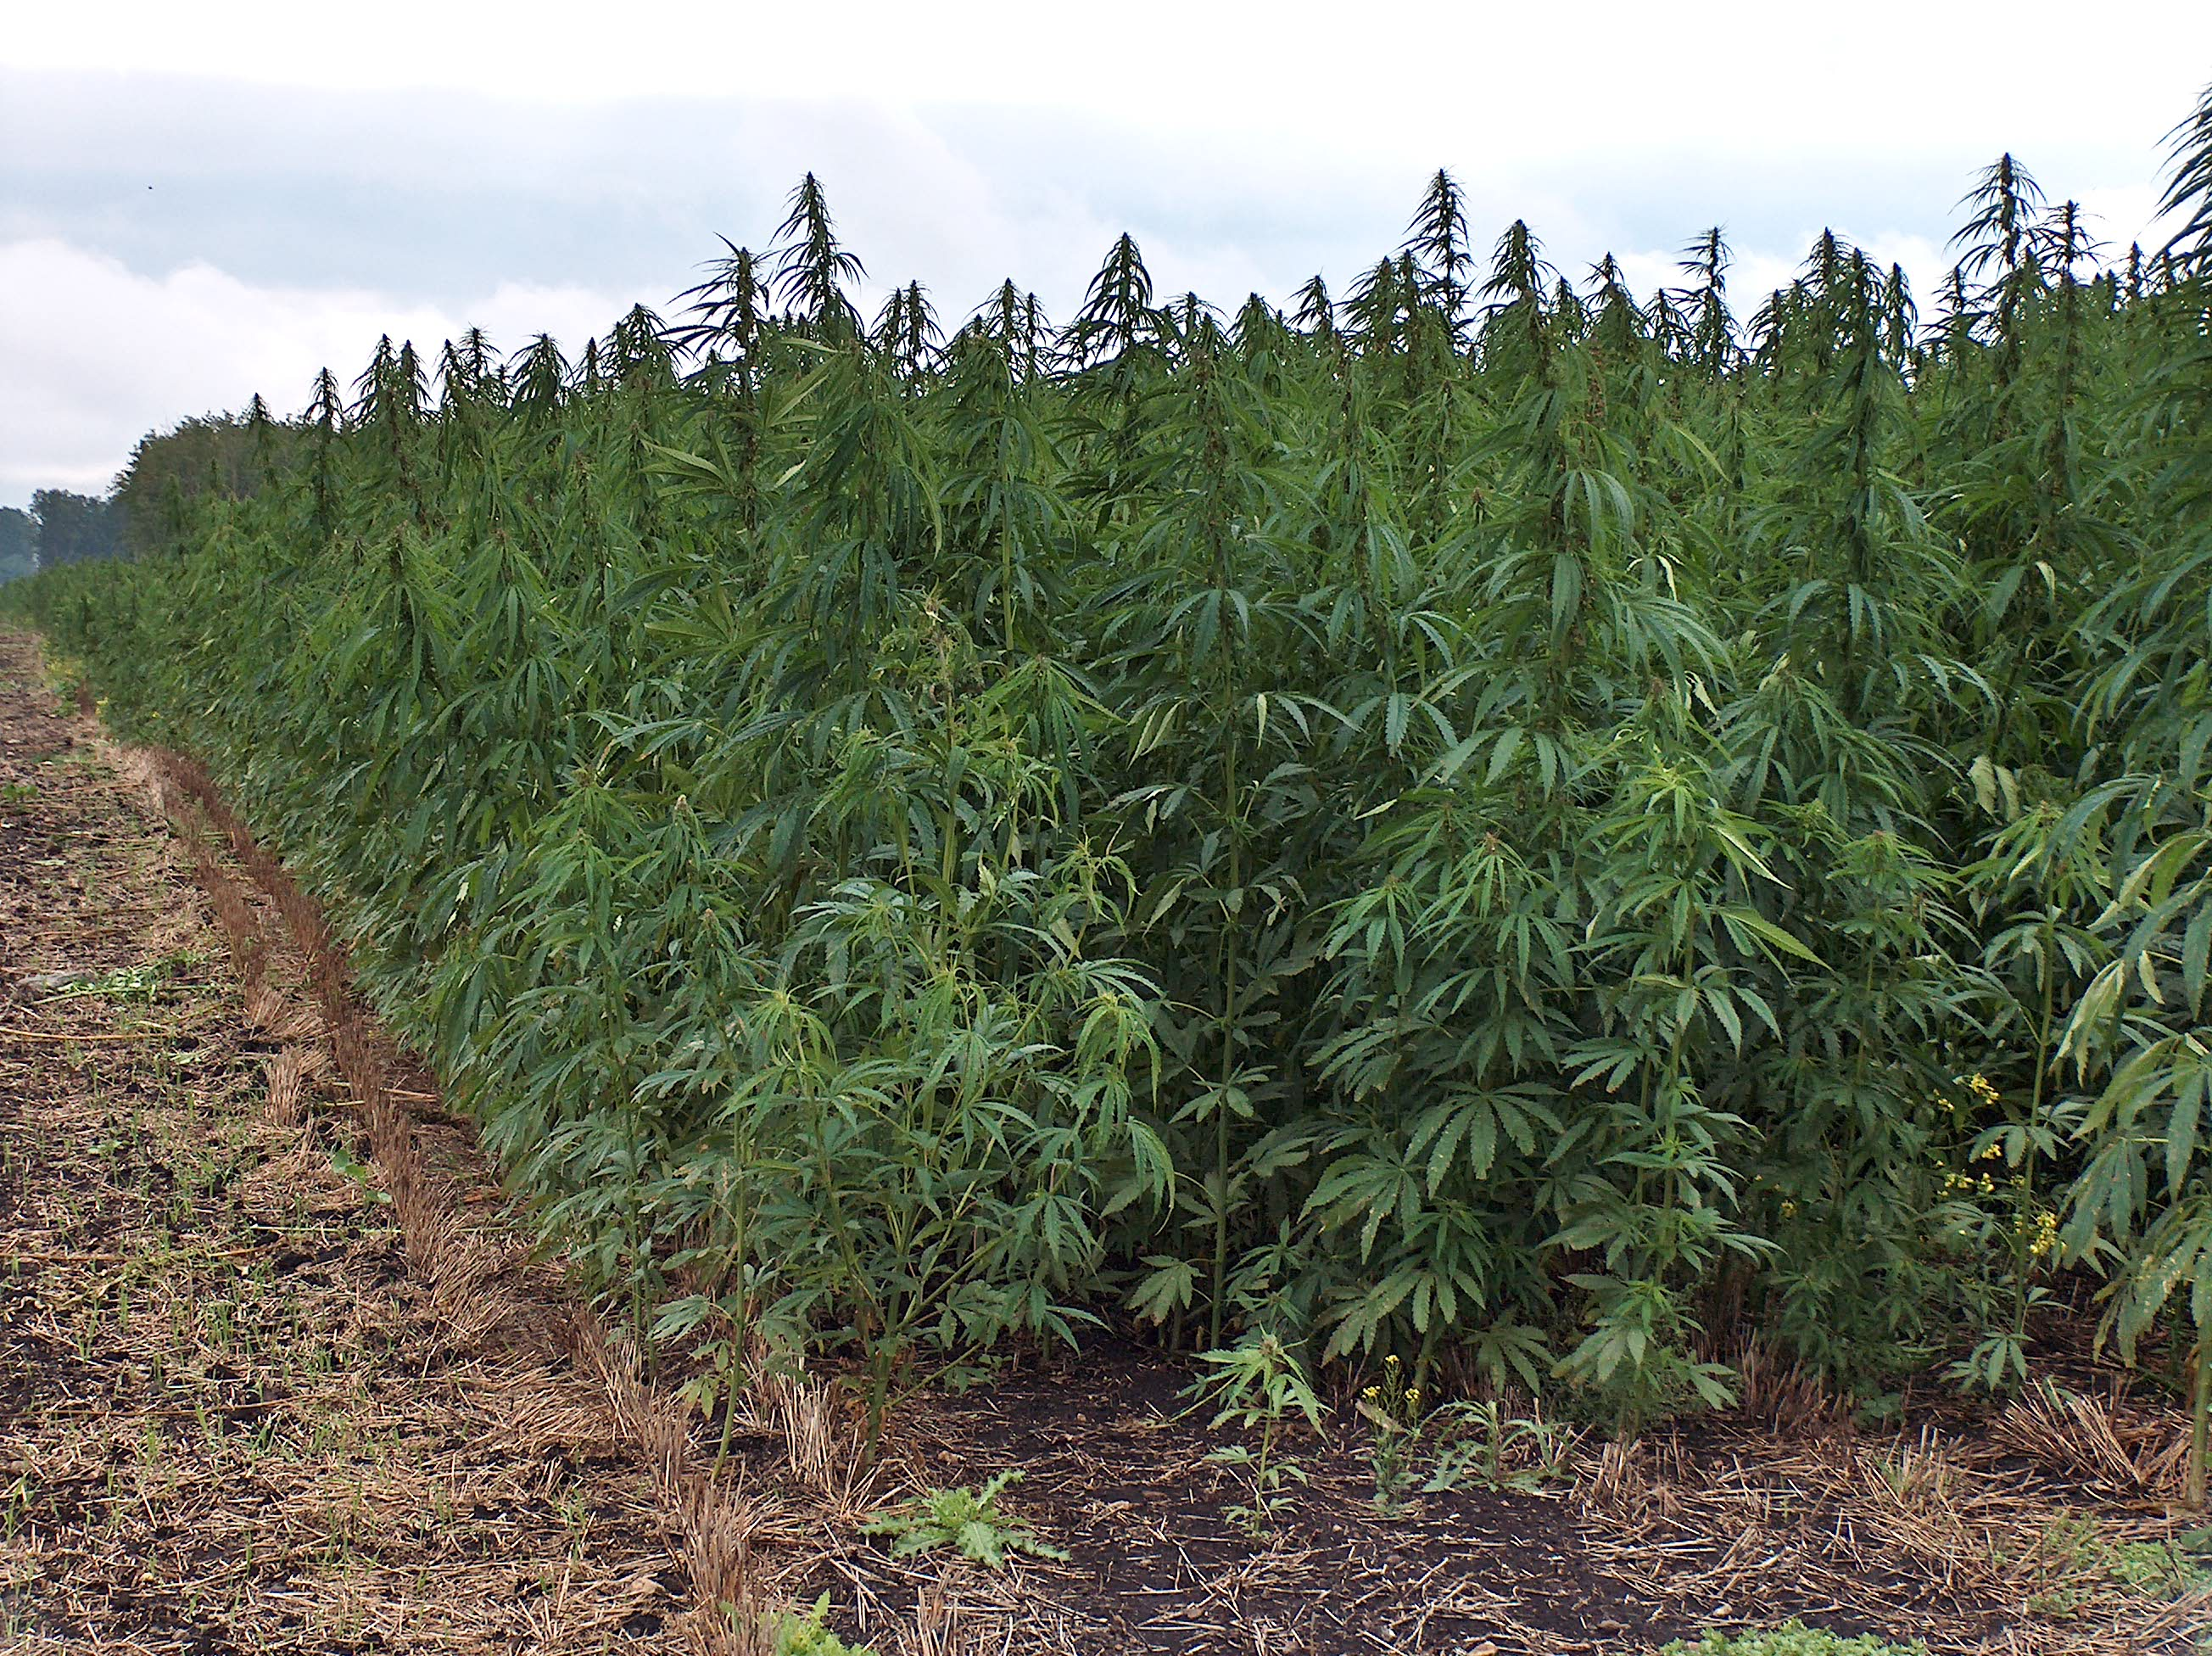 Industrial hemp is a growing industry in Mesa County, Colorado